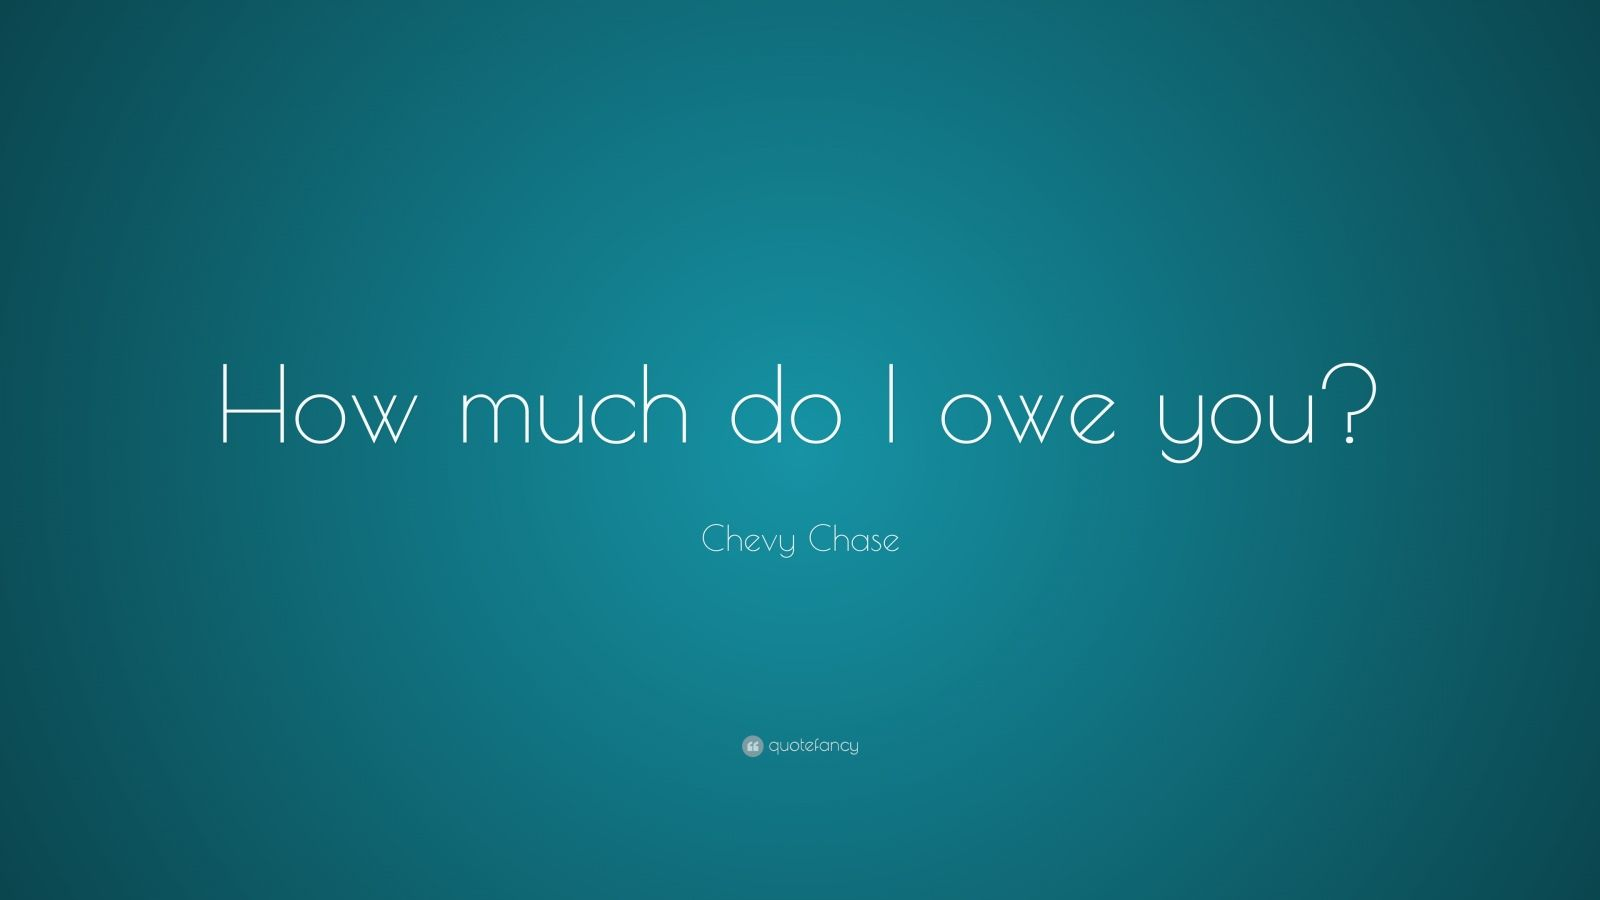 """Chevy Chase Quote: """"How Much Do I Owe You?"""" (7 Wallpapers"""